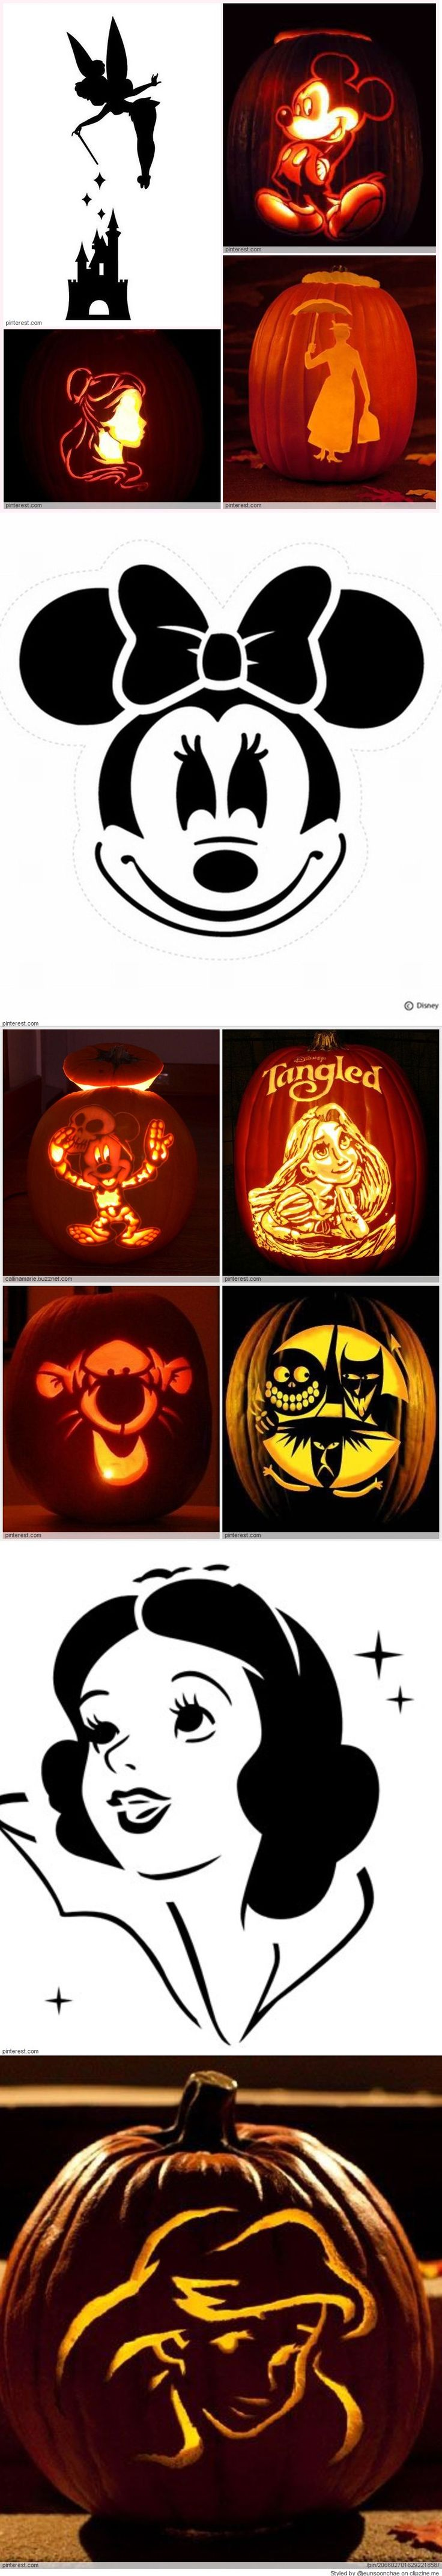 Disney Pumpkin Carving Ideas MARY POPPINS ☂